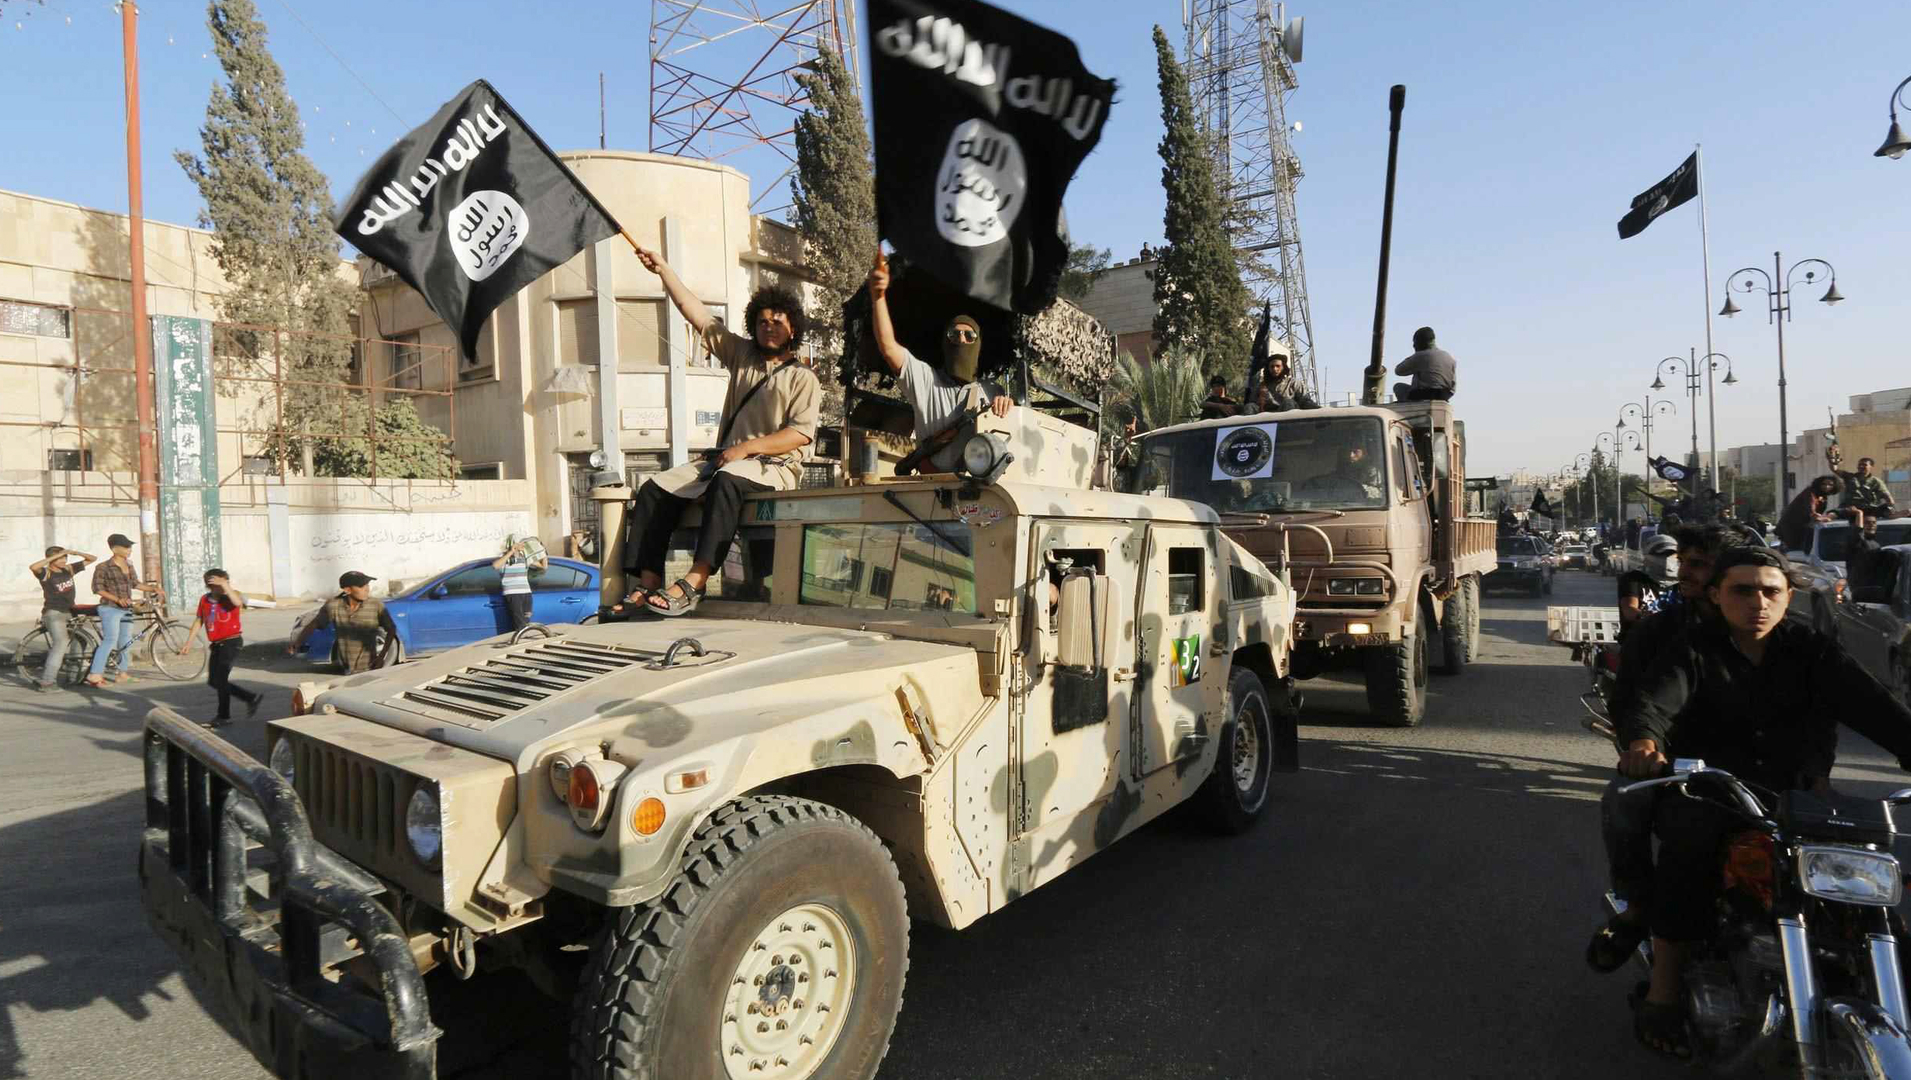 The Islamic State: Although It Leads Global Unbelief, The U.S. Is An Enemy Like All Other Enemies